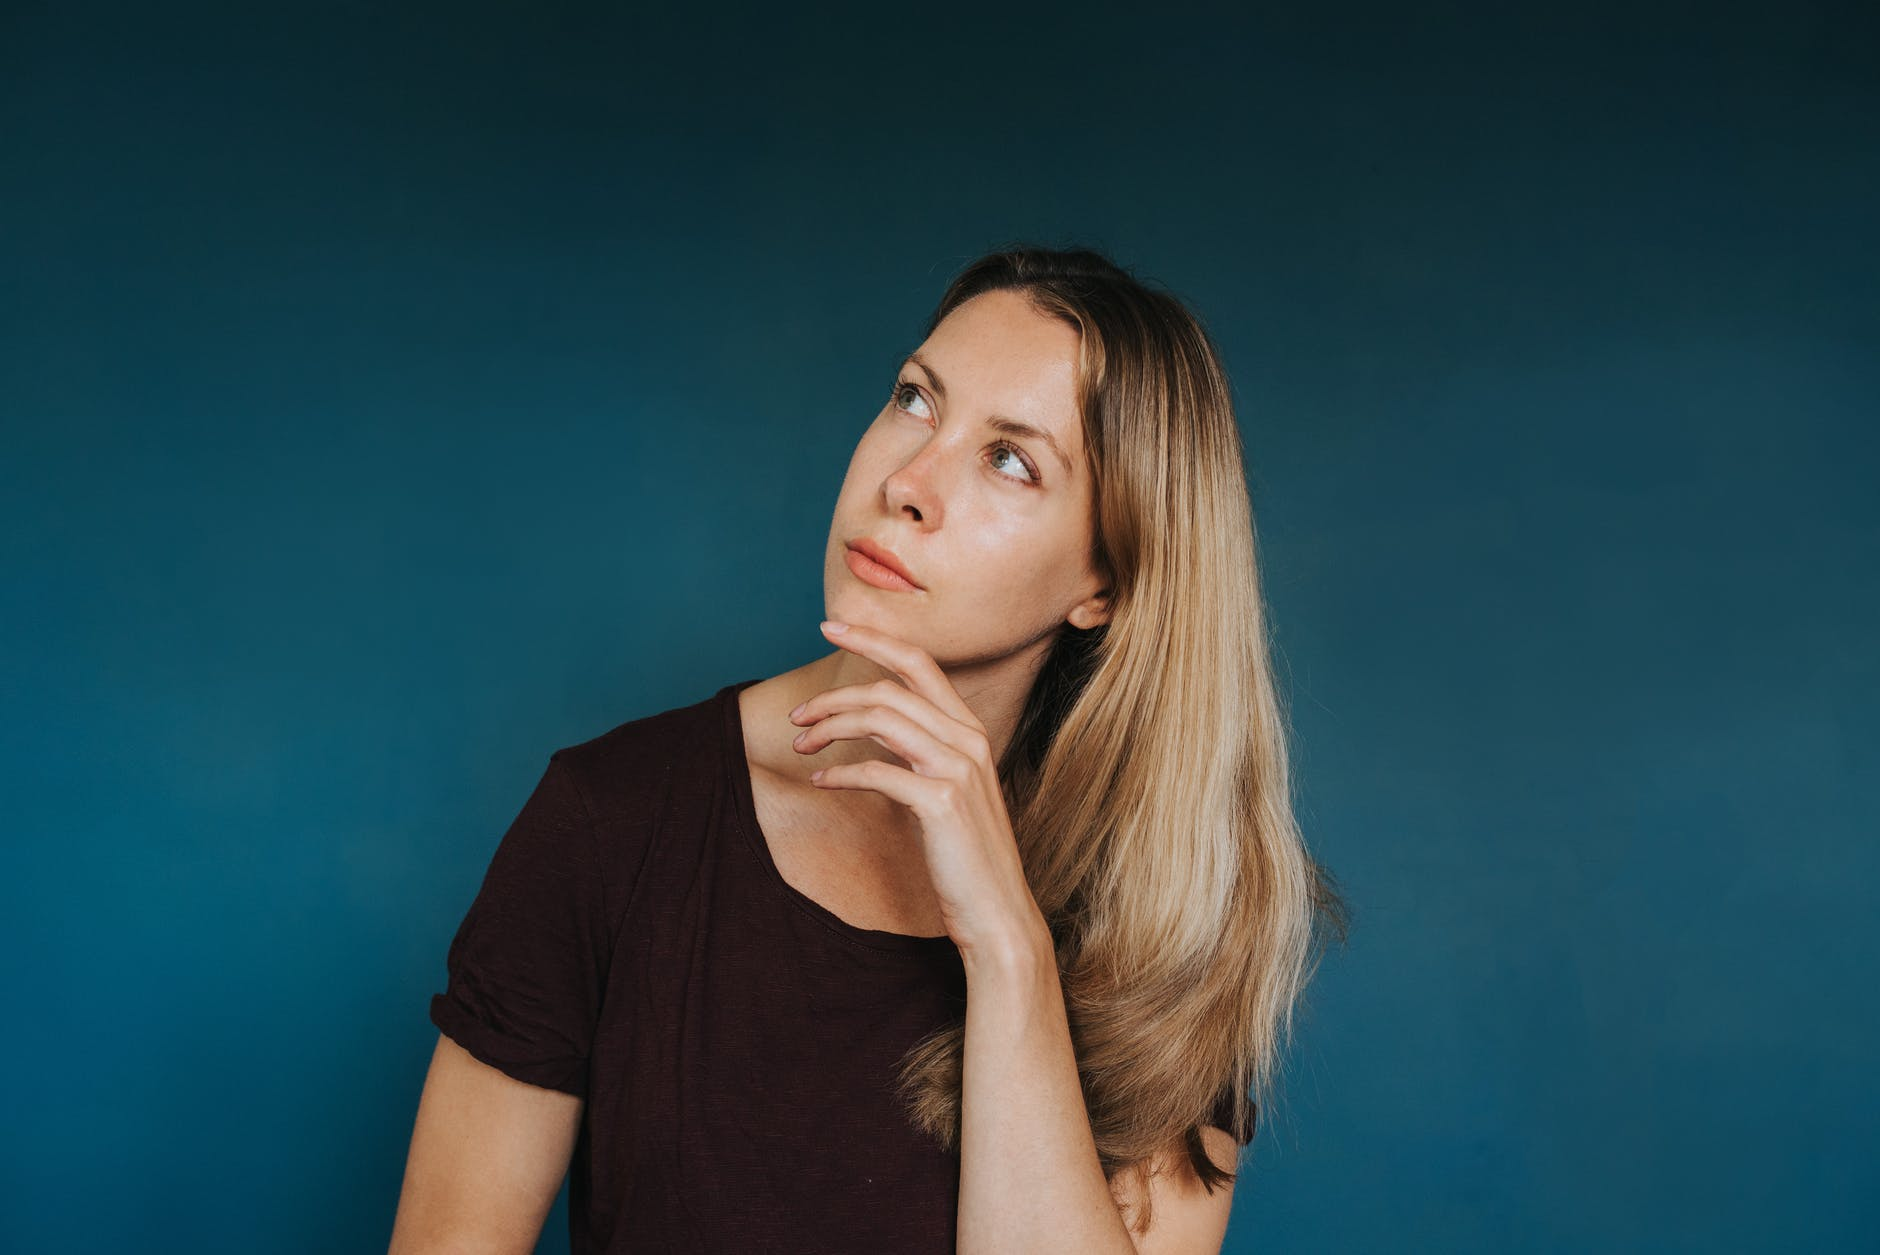 dreamy woman standing against blue background